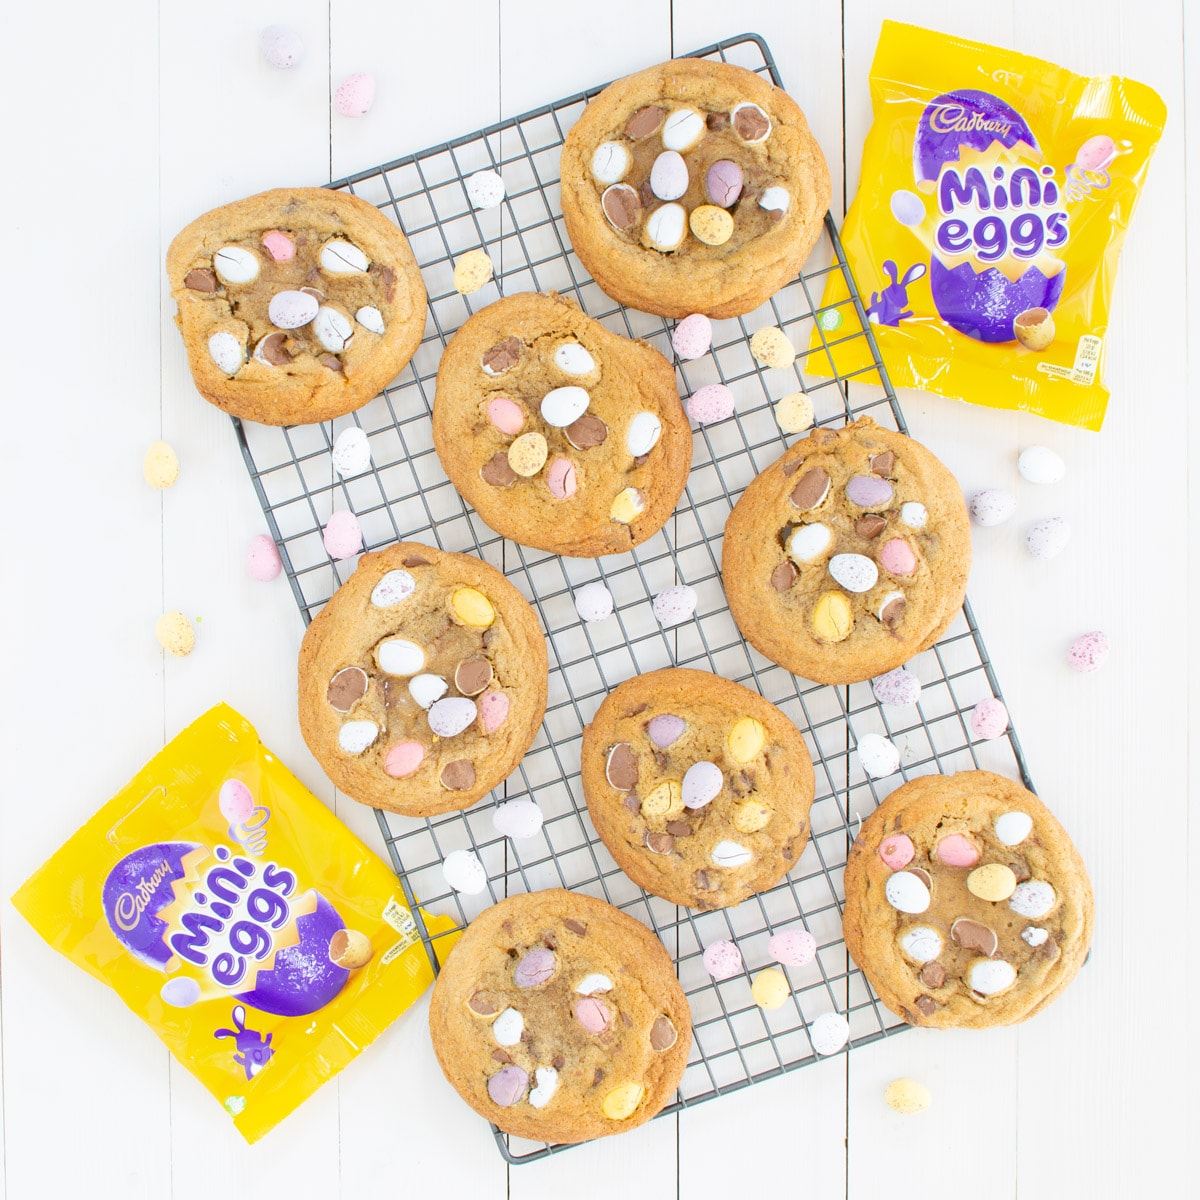 Mini egg cookies on a cooling rack with packets of mini eggs.